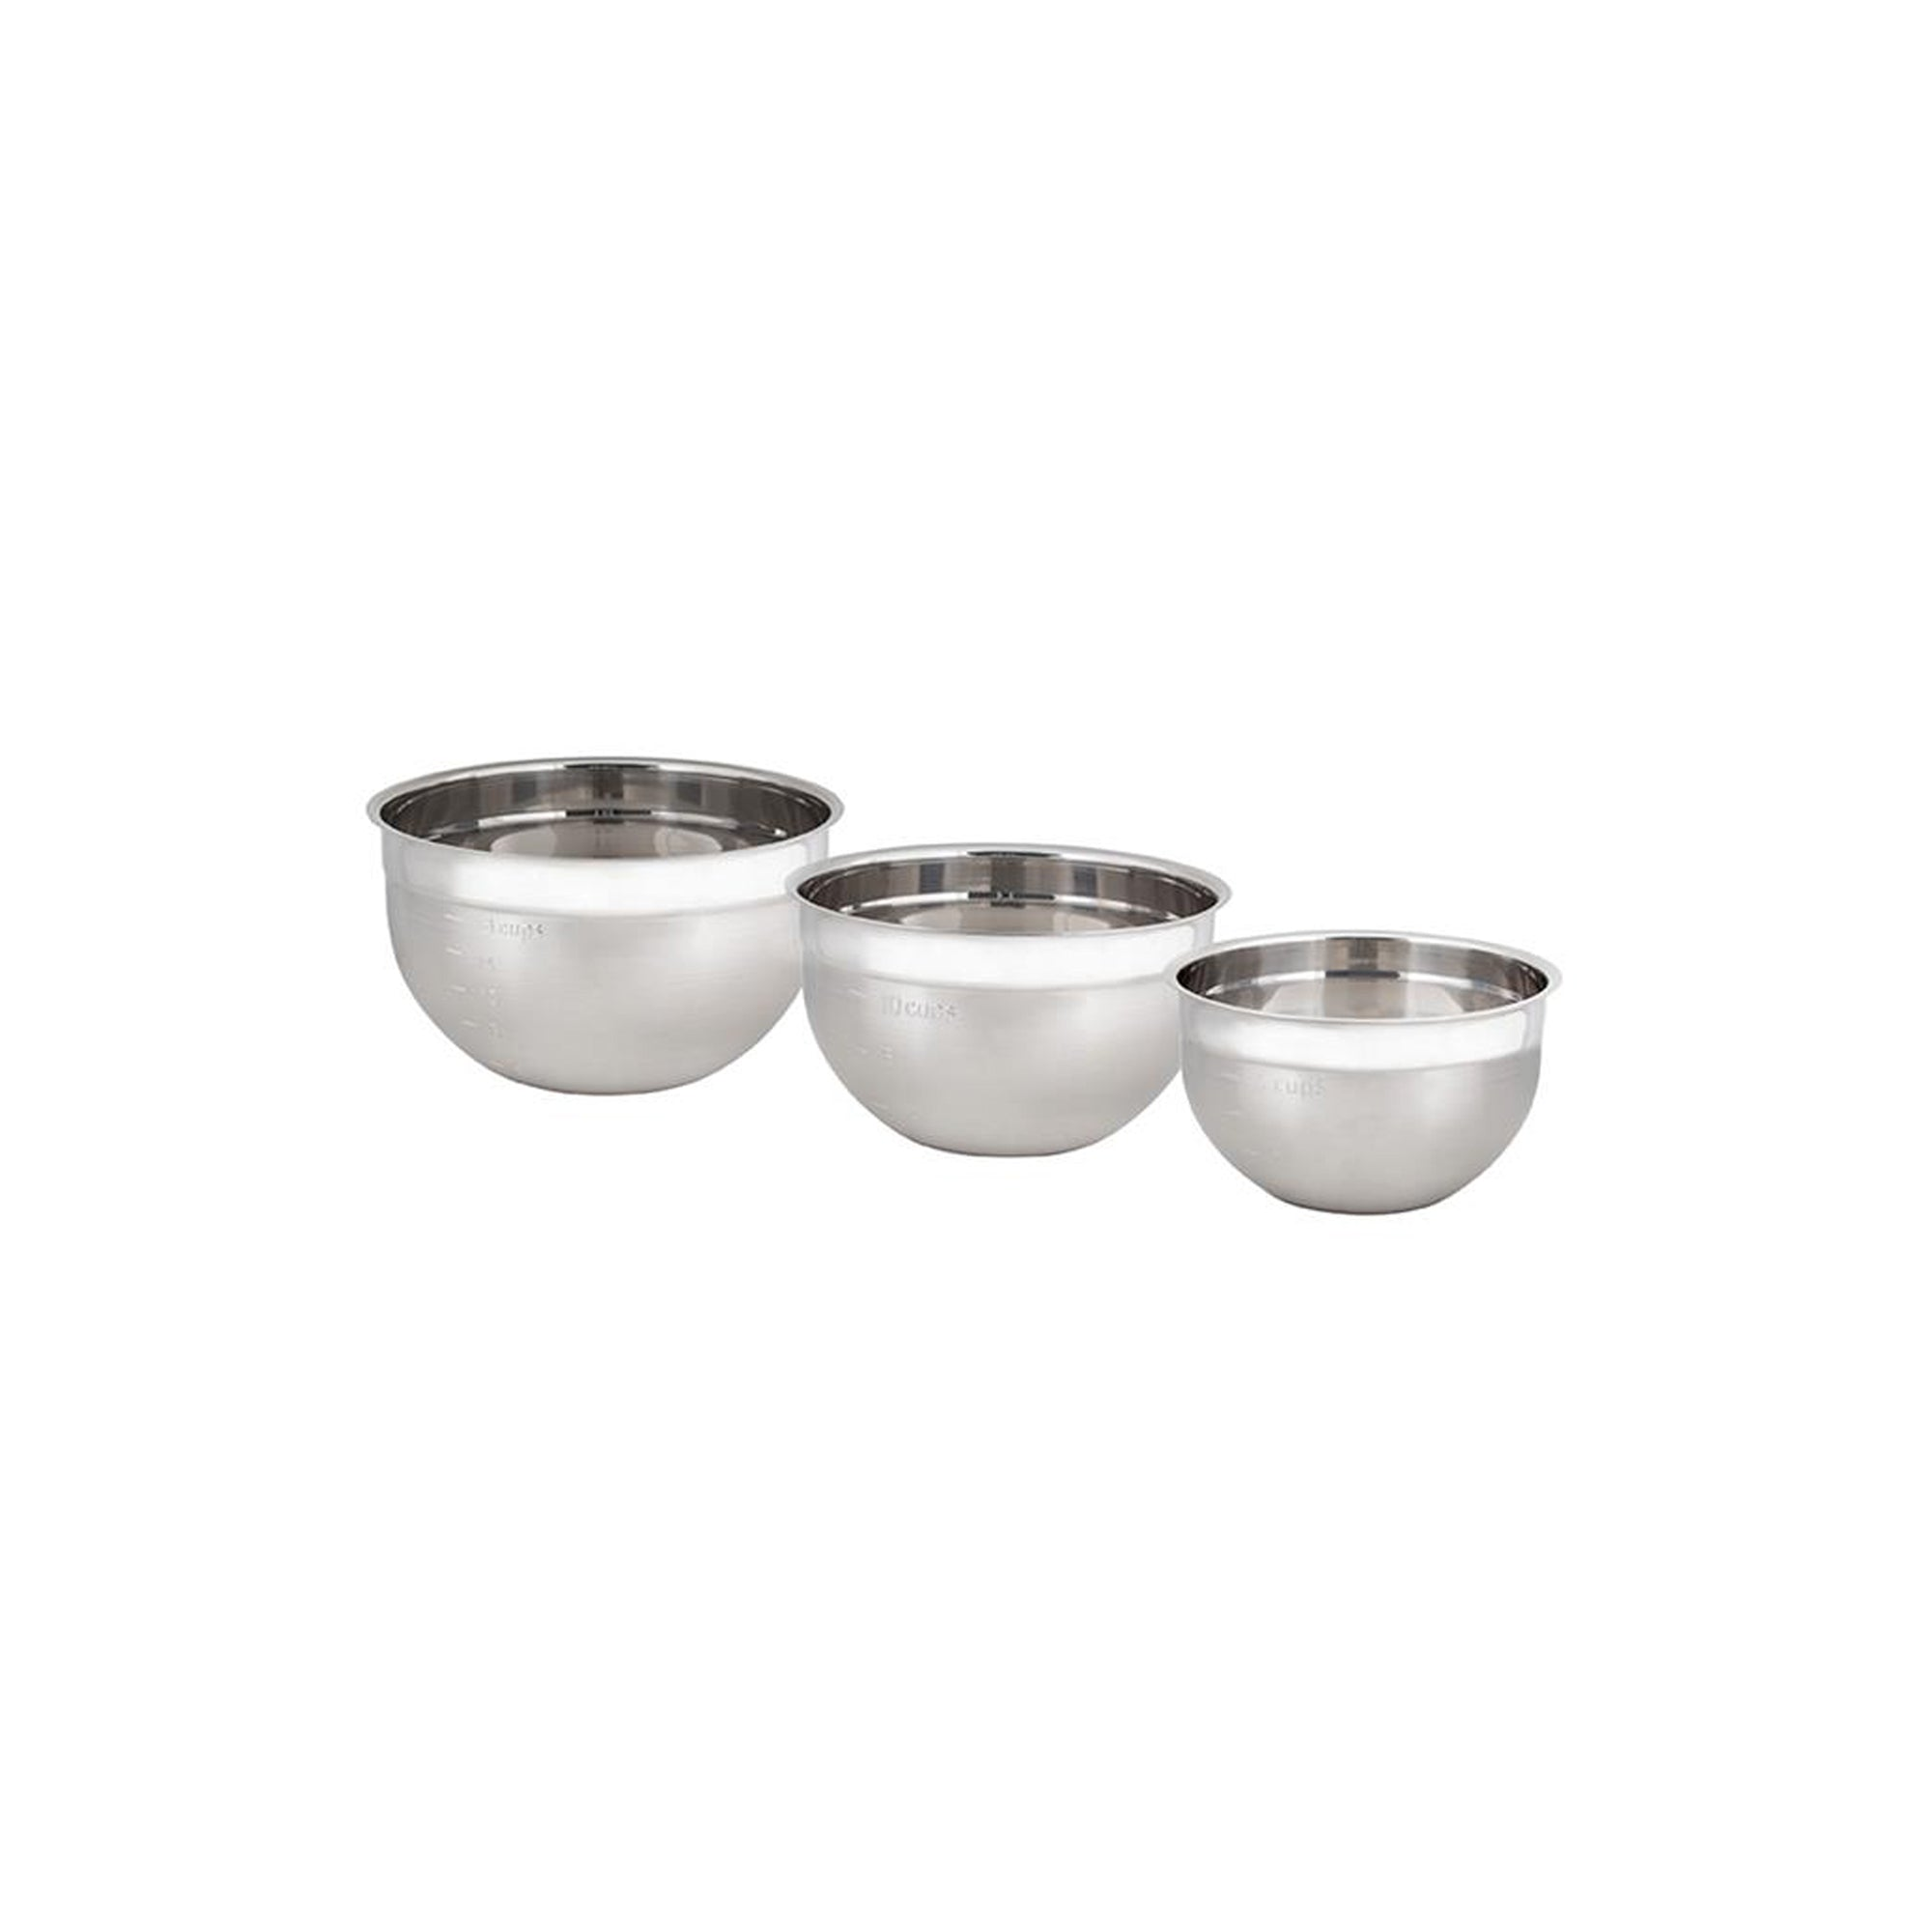 Stainless Steel Mixing Bowl - Set of 3